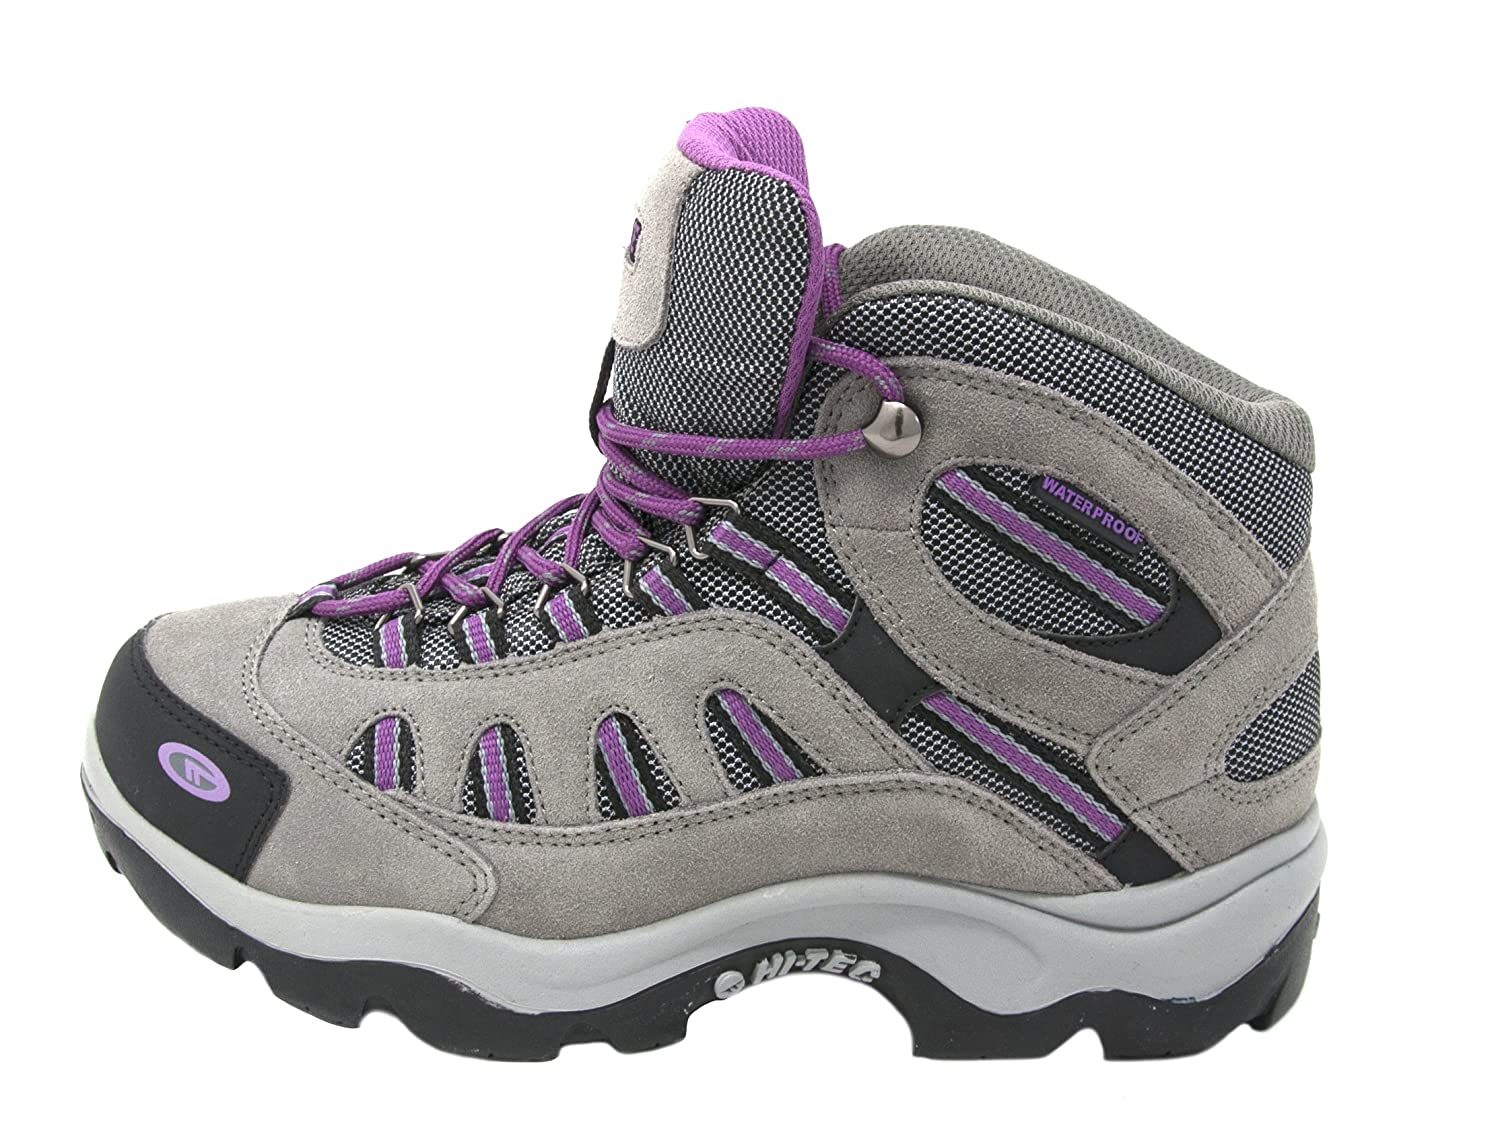 Hi-Tec Women's Bandera Mid-Rise Waterproof Hiking Boot B074NBRWD5 9 B(M) US|Grey/Viola